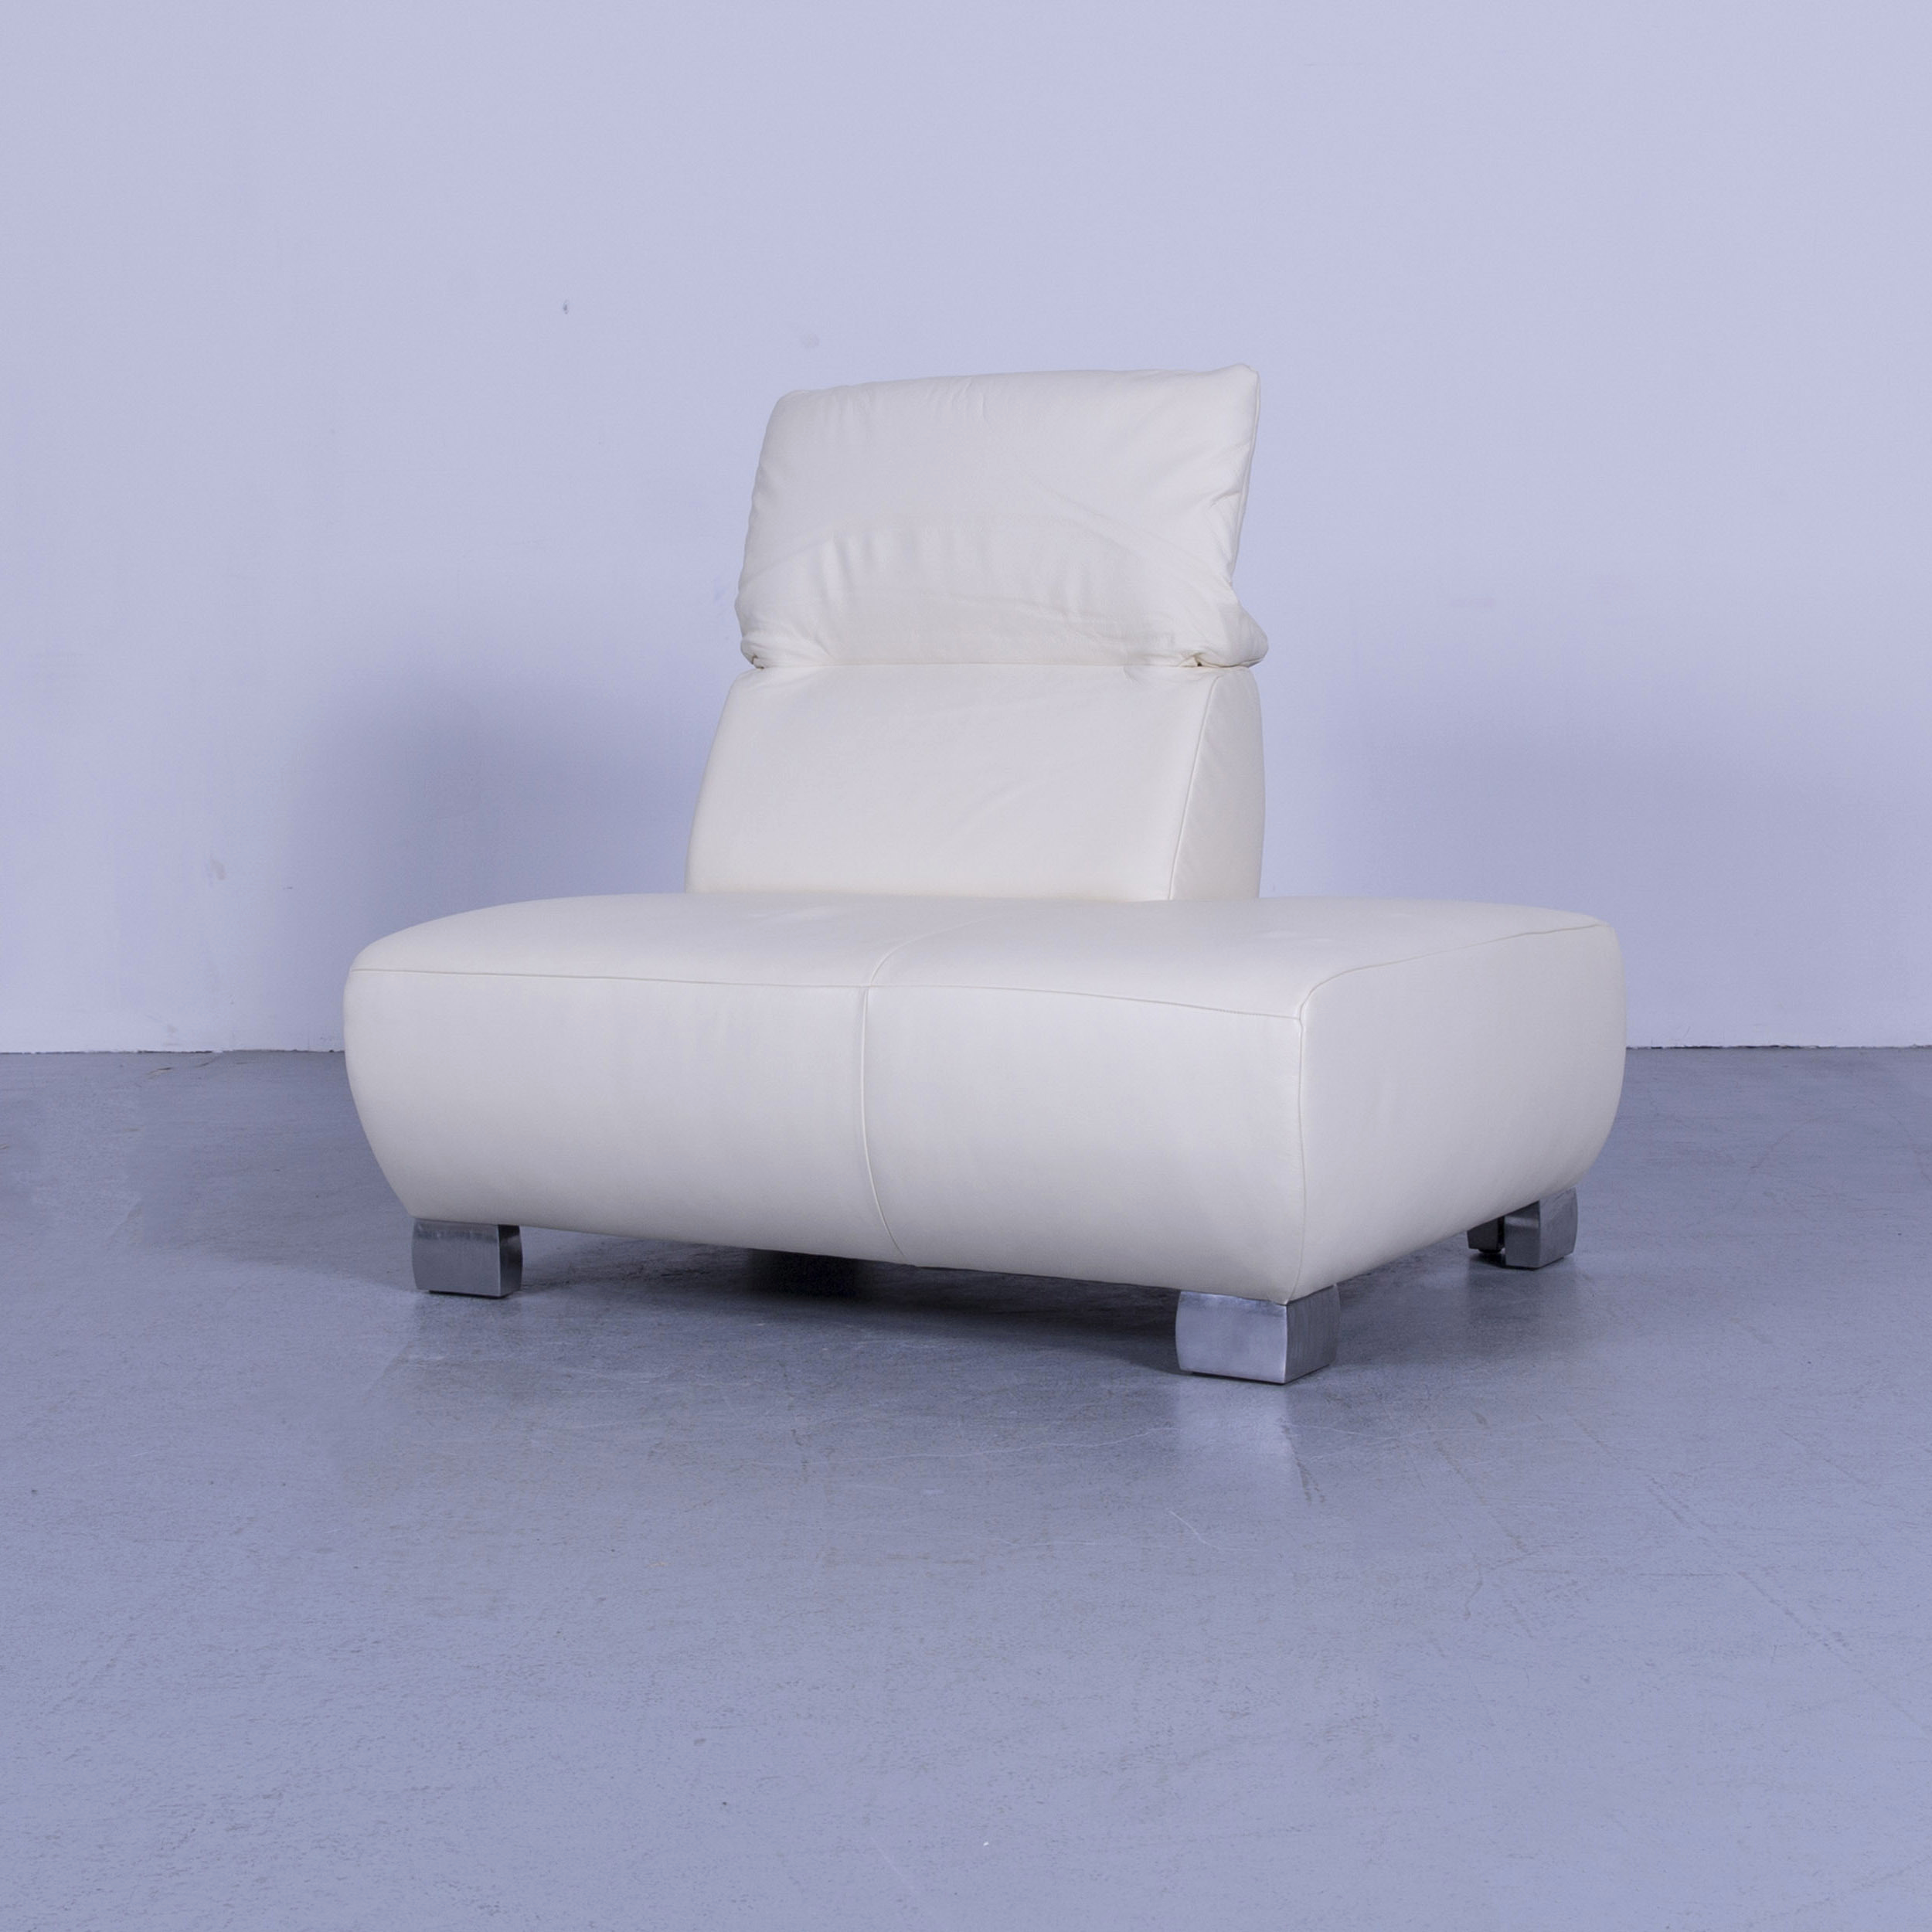 Koinor Volare Preis Best sofa Recamiere Cool sofa Recamiere with sofa Recamiere